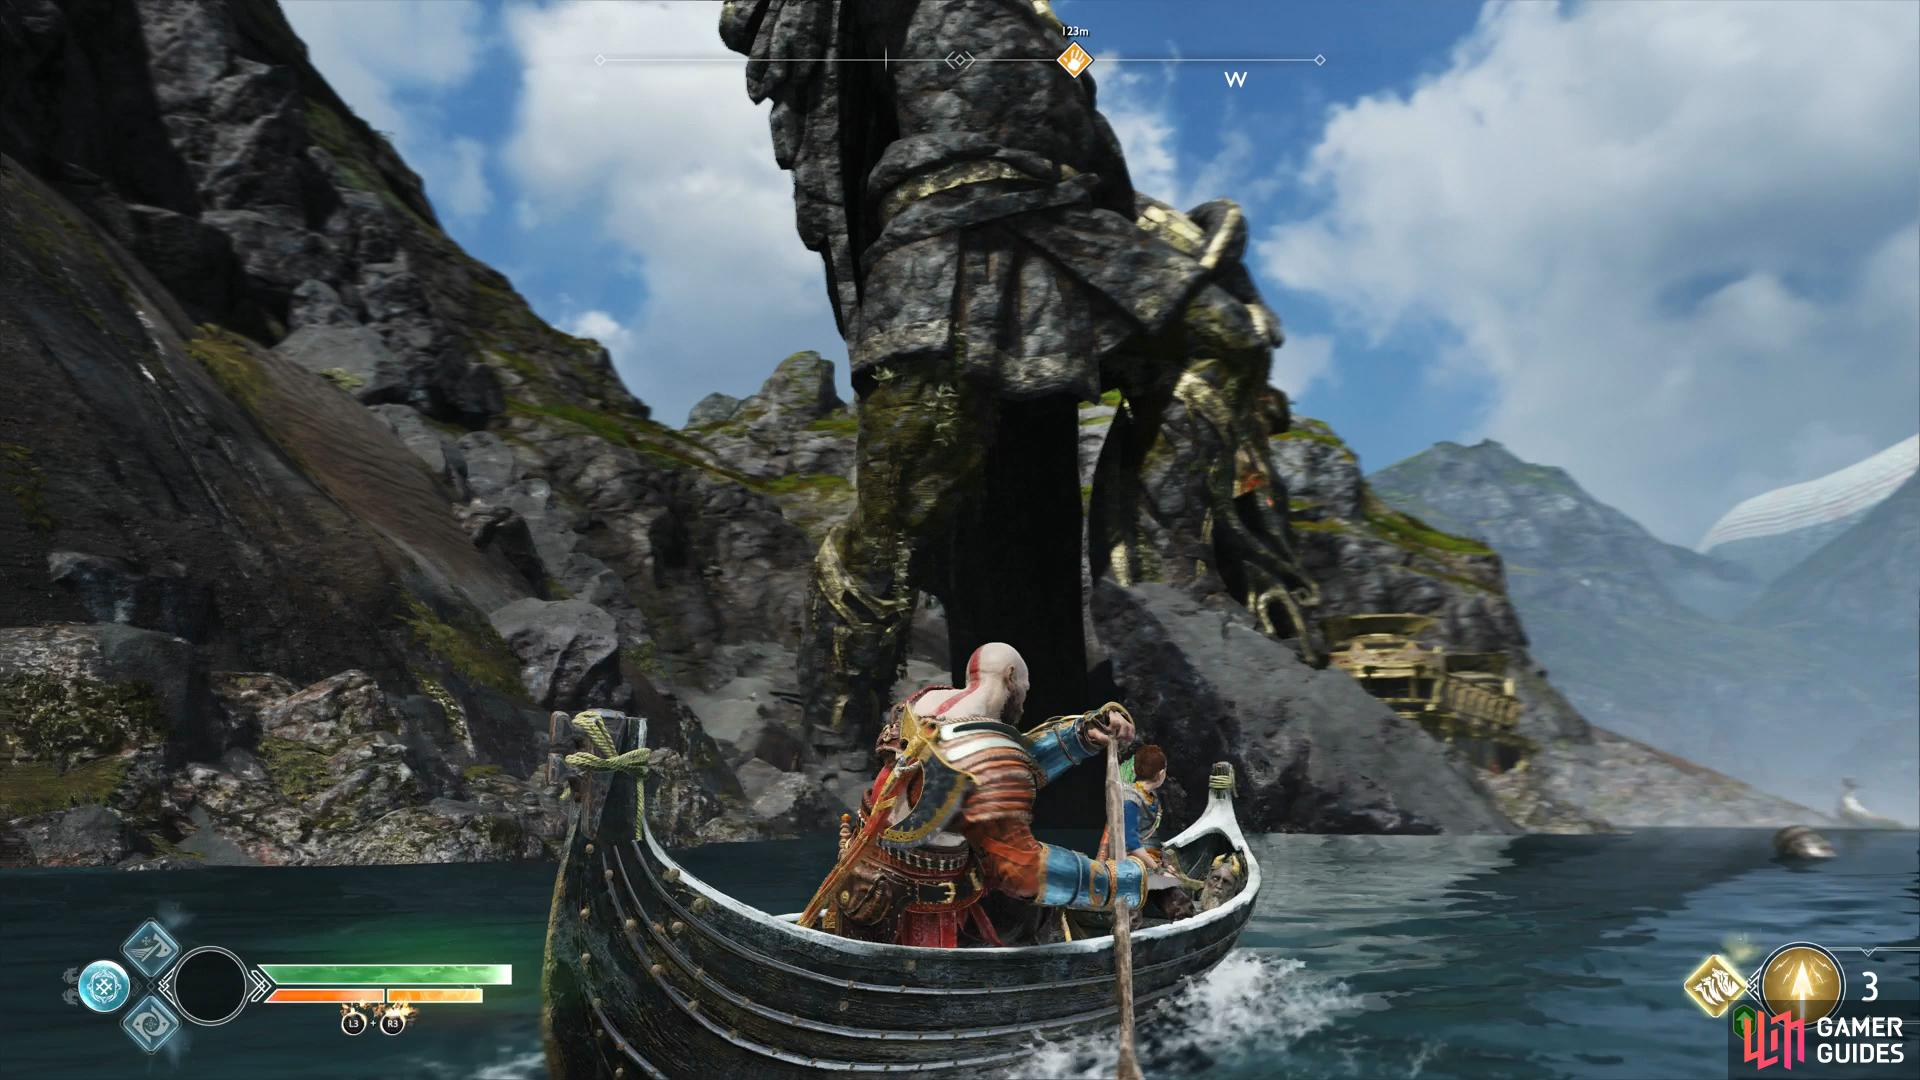 Take the boat through the legs of the Thor statue to reach the cavern.